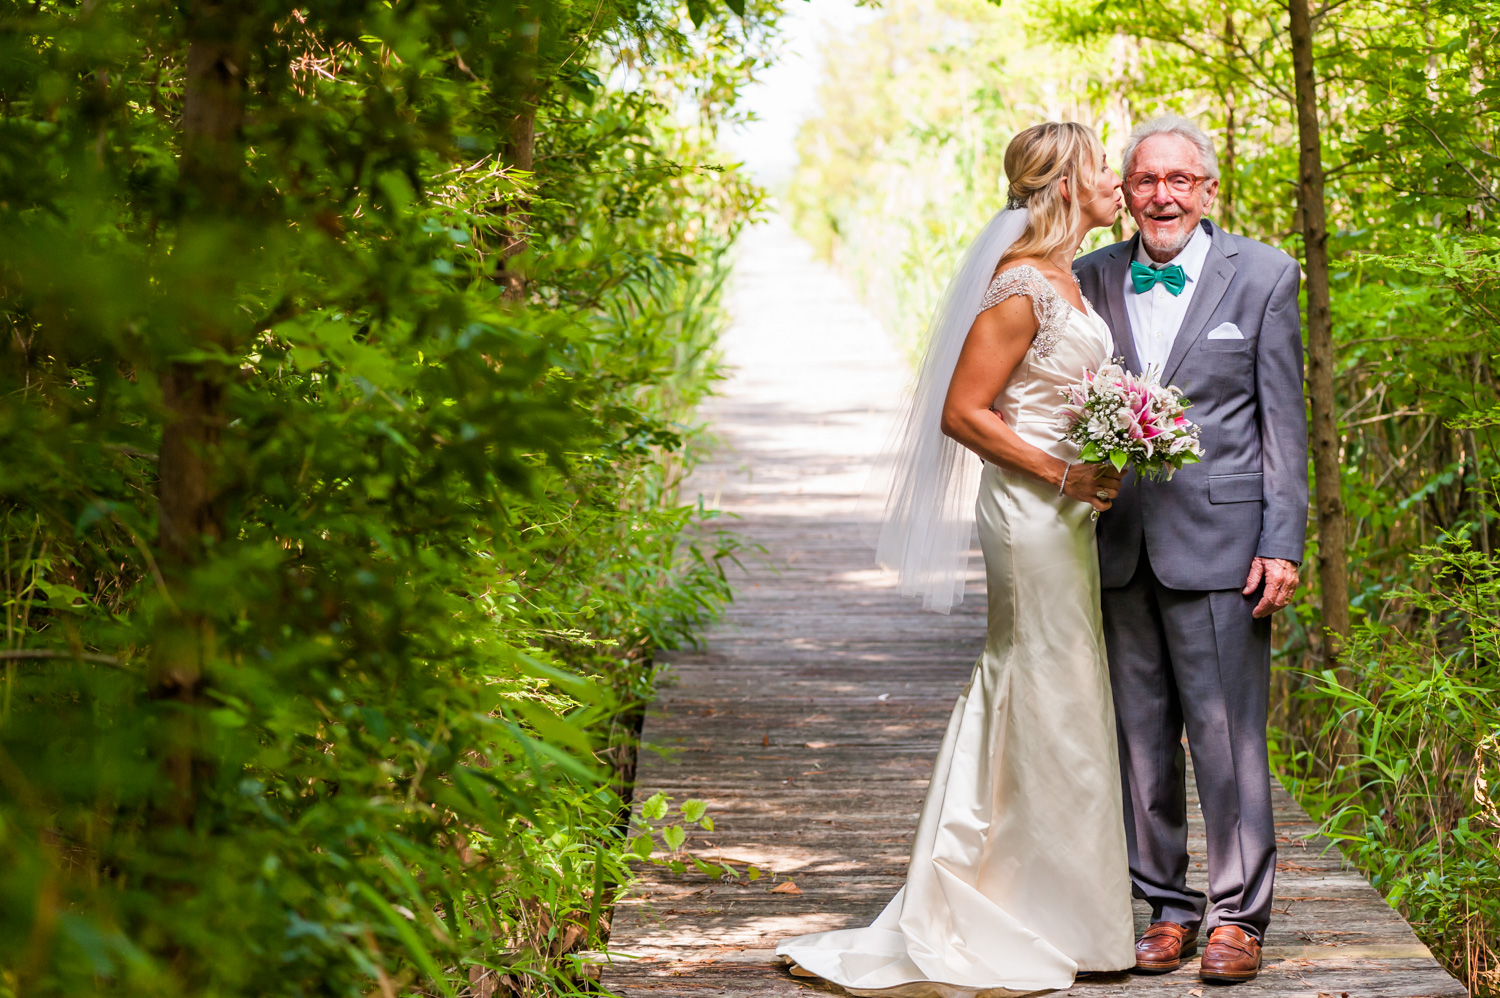 BridalPulse - An Outdoor Vineyard Wedding in NC By Rent My Wedding | bride with her father